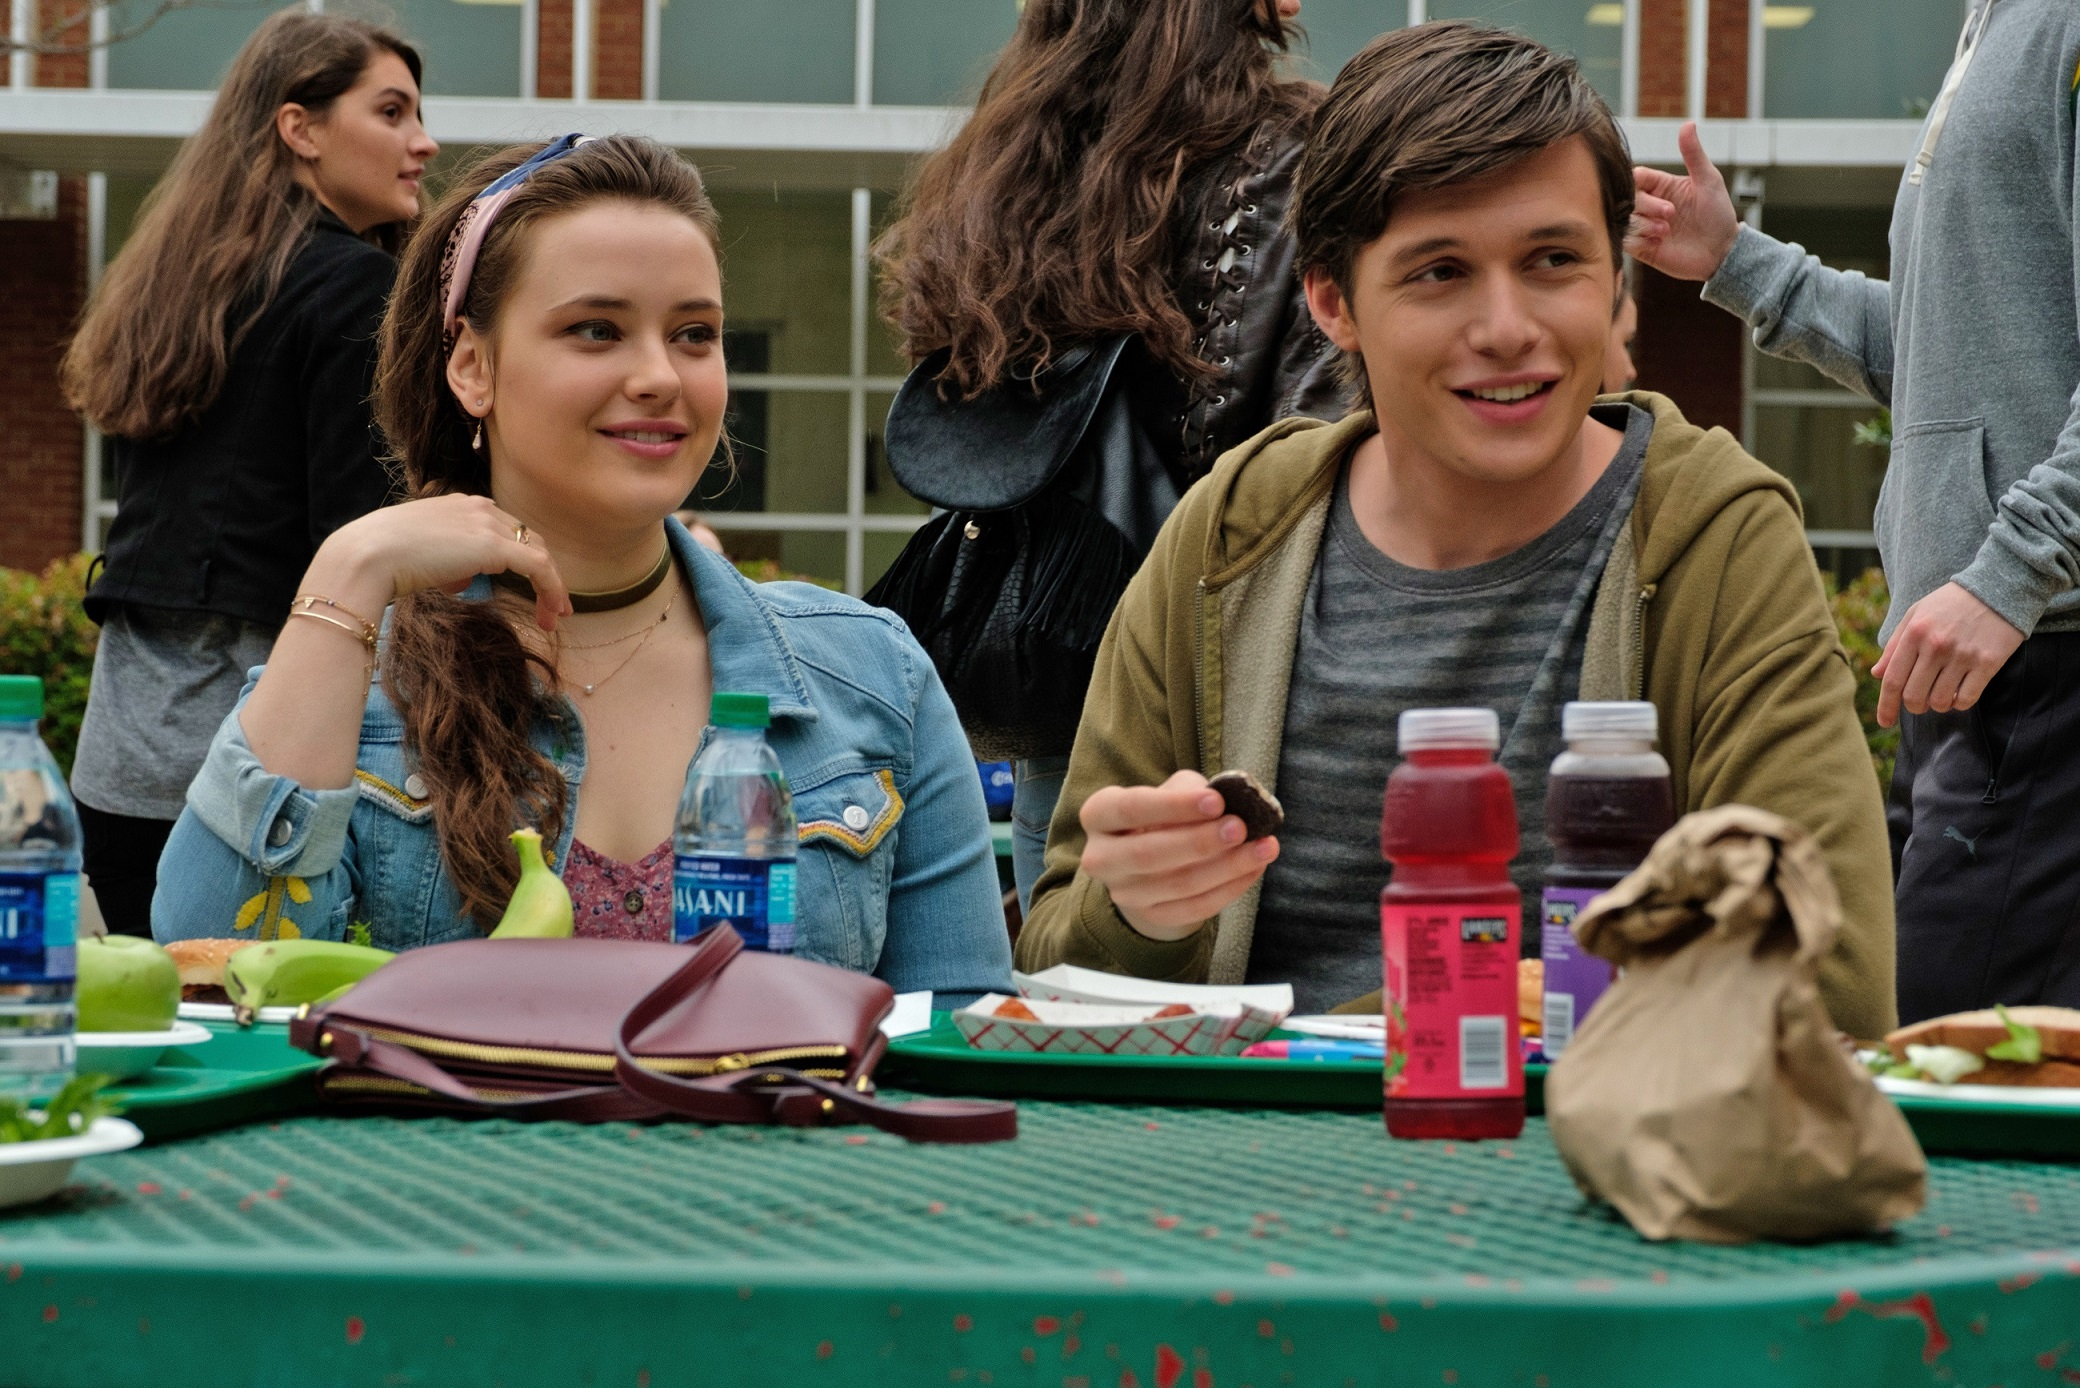 'Love, Simon' set to hit theaters on May 9